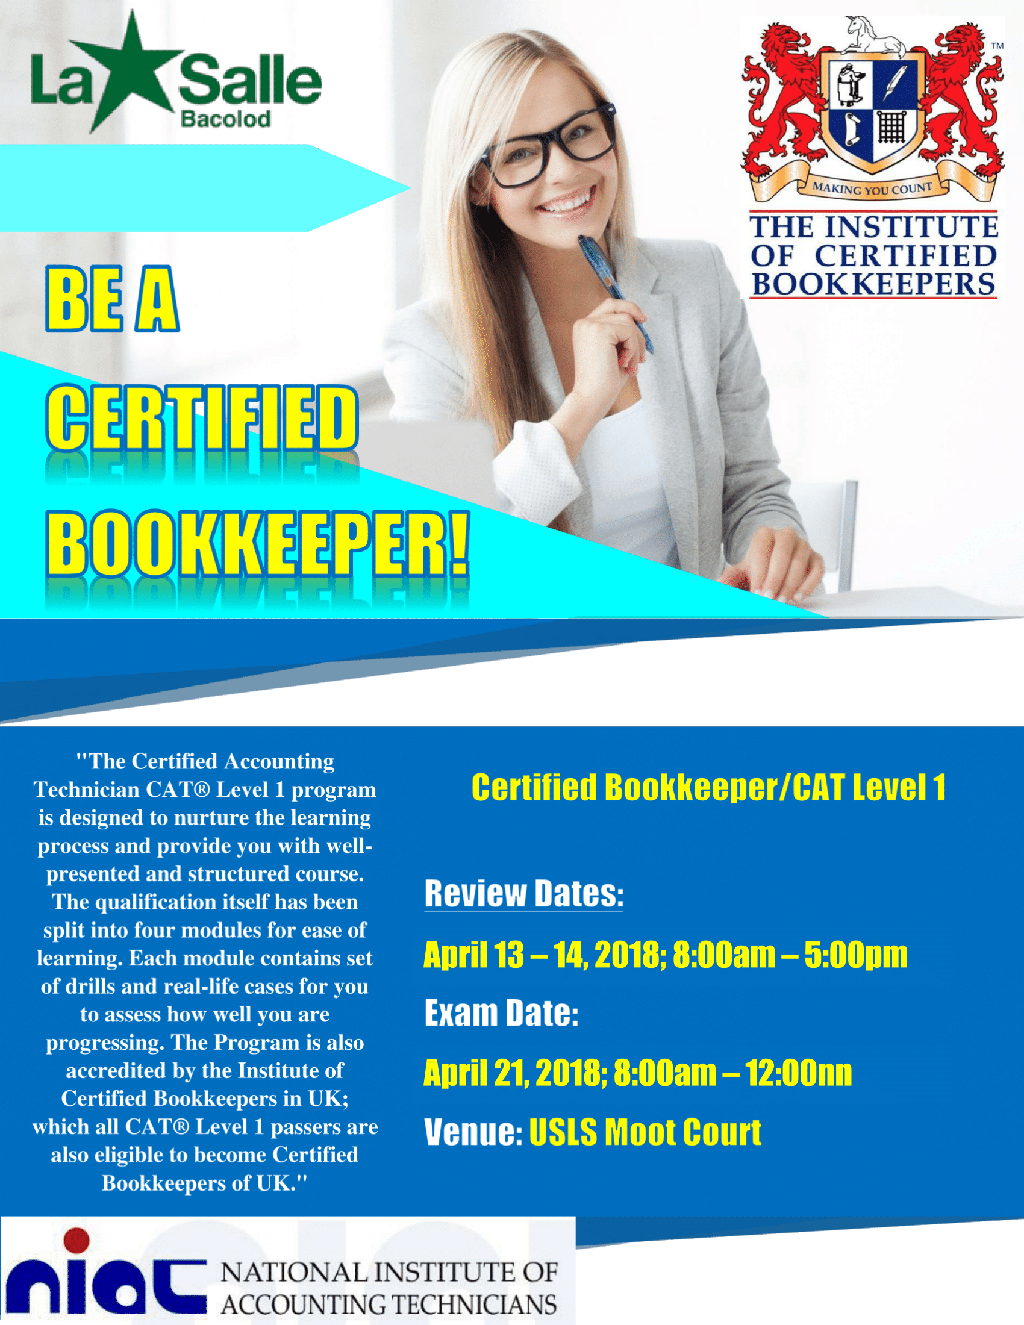 Certified-Bookkeeper-and-Registered-Cost-Accountant-Examinations.png